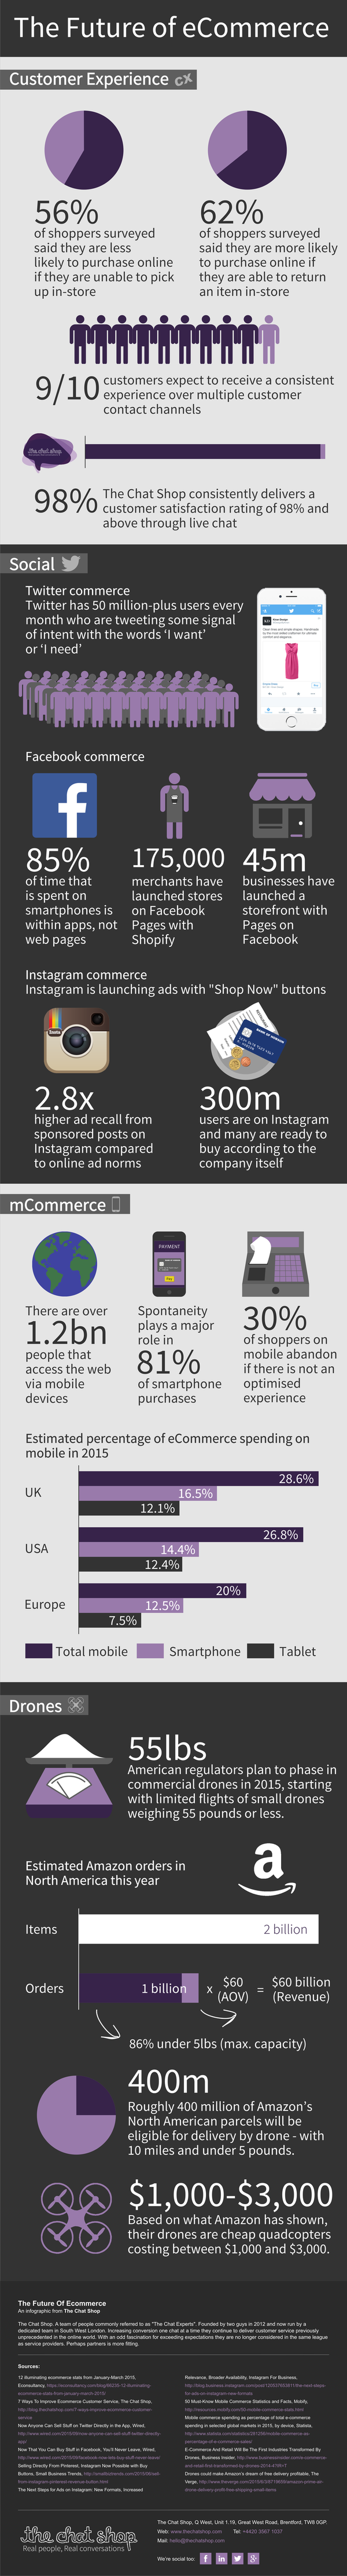 ecommerce_future_infographic